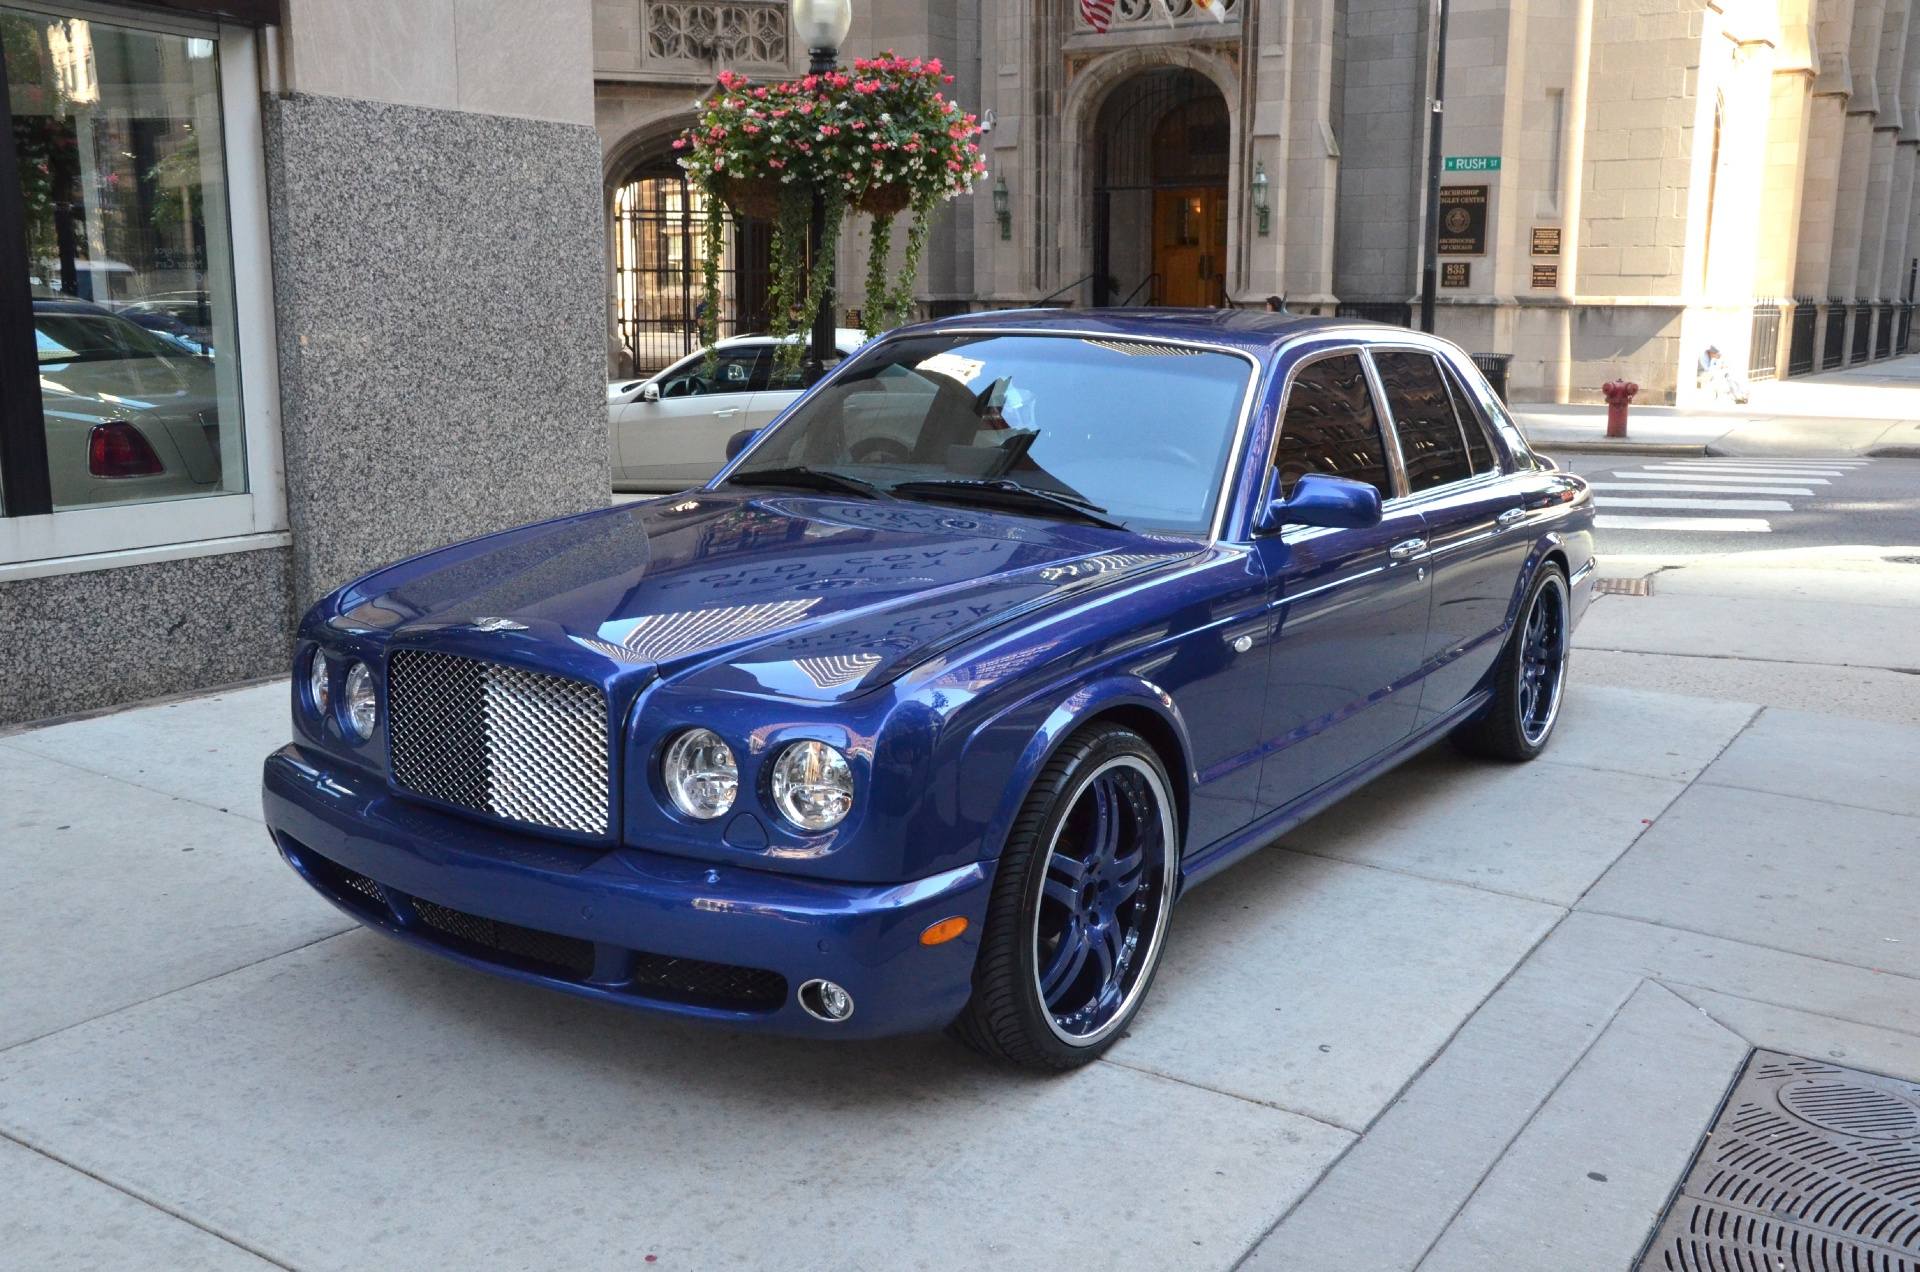 2003 bentley arnage t used bentley used rolls royce. Black Bedroom Furniture Sets. Home Design Ideas